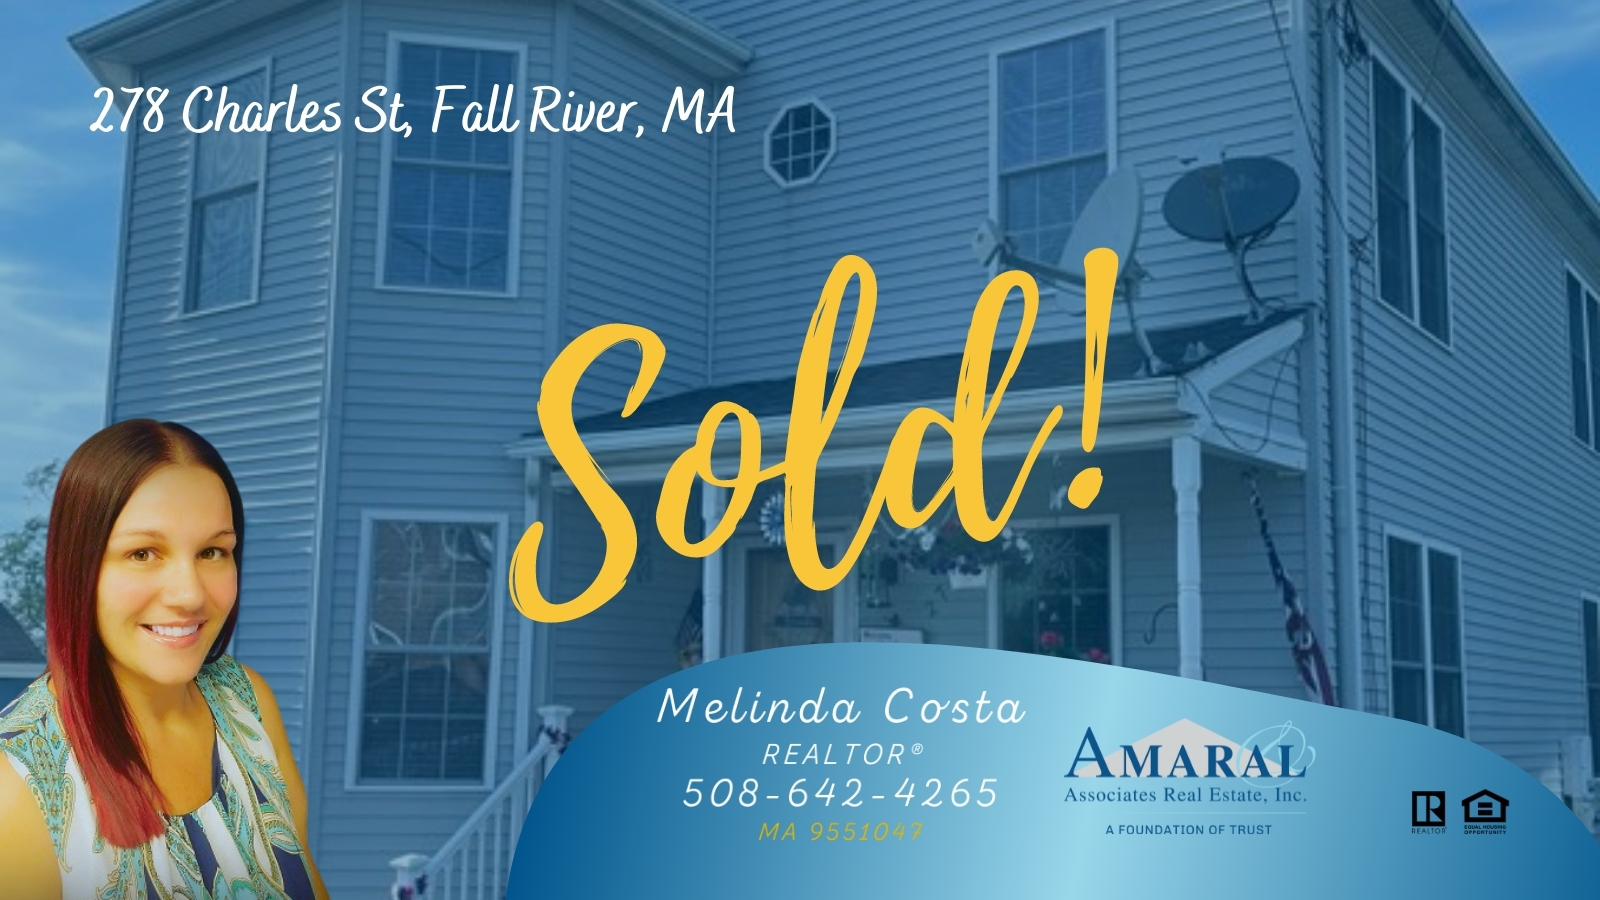 SOLD with Melinda Costa! 278 Charles St, Fall River, MA